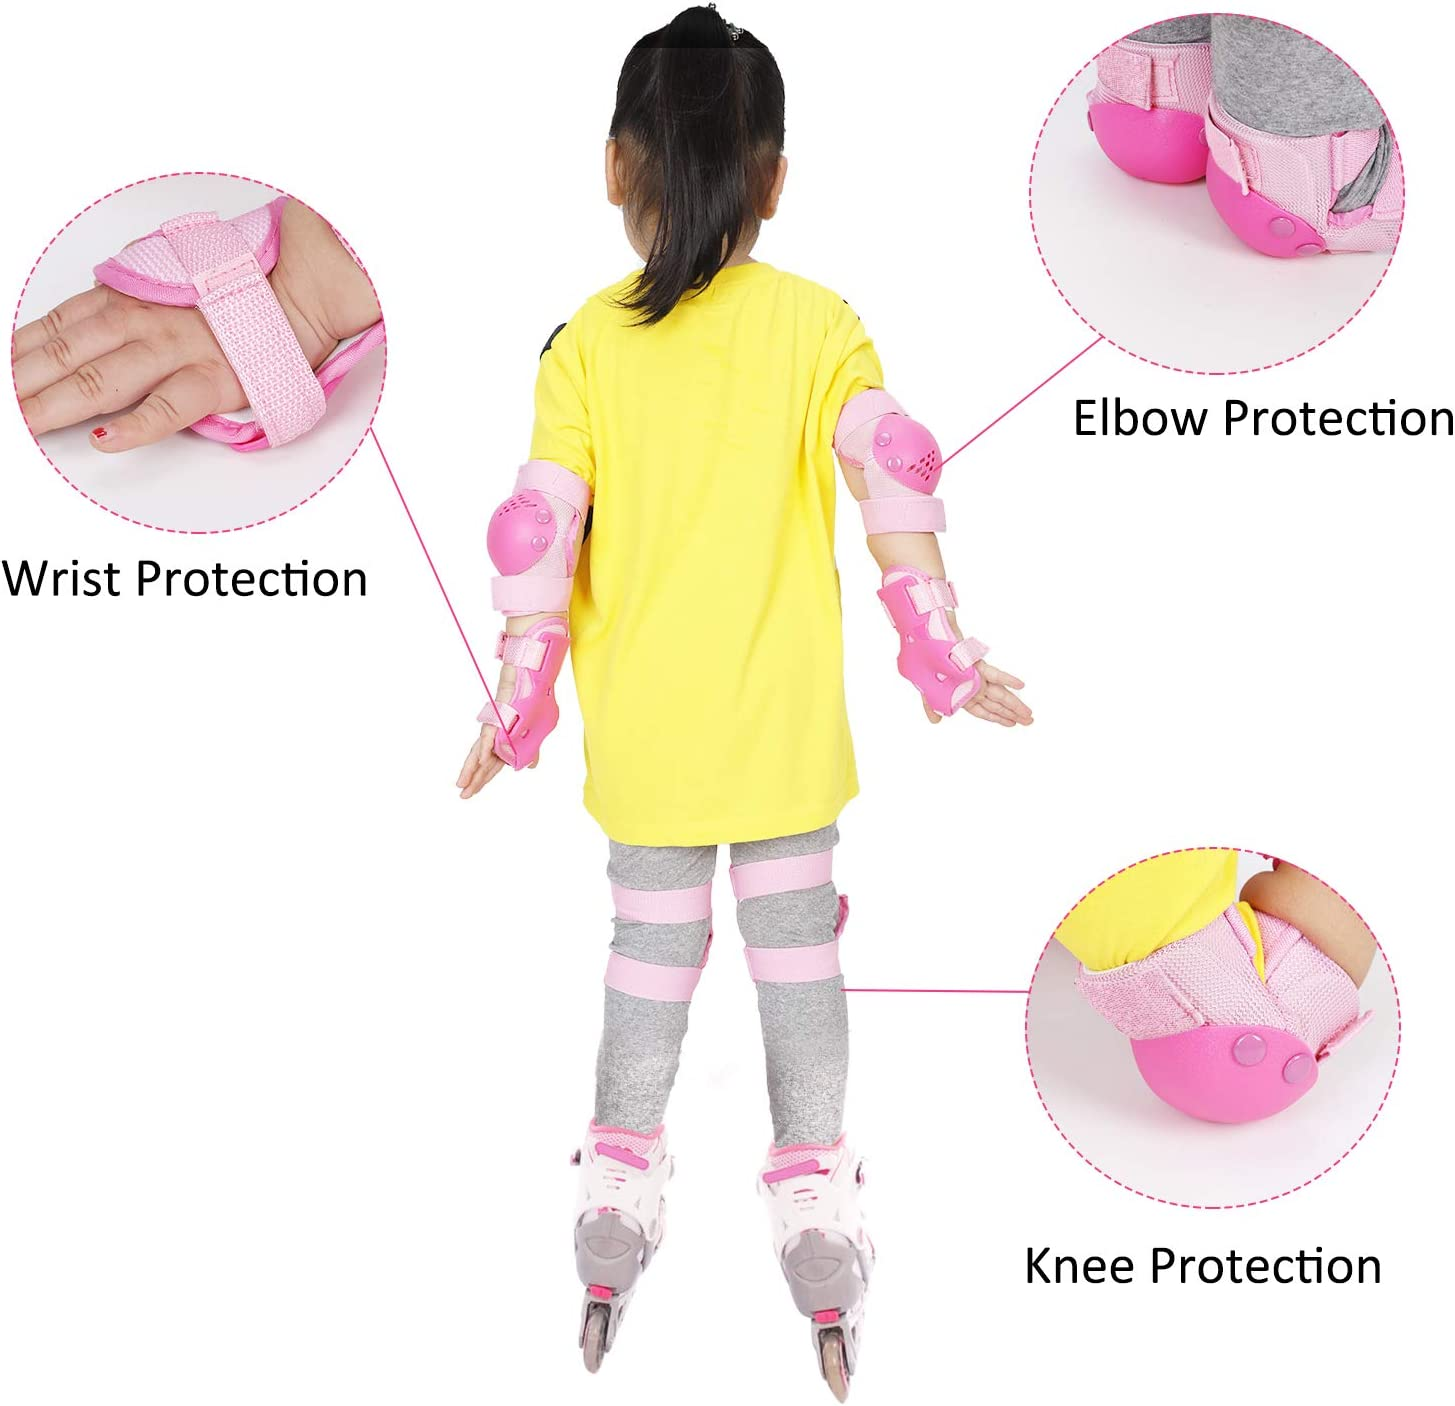 G-Fiend Kids Knee Pads Elbow Pads Wrist Pads Protective Gear for Inline Skating Cycling Scooters Skateboarding Outdoor Sports